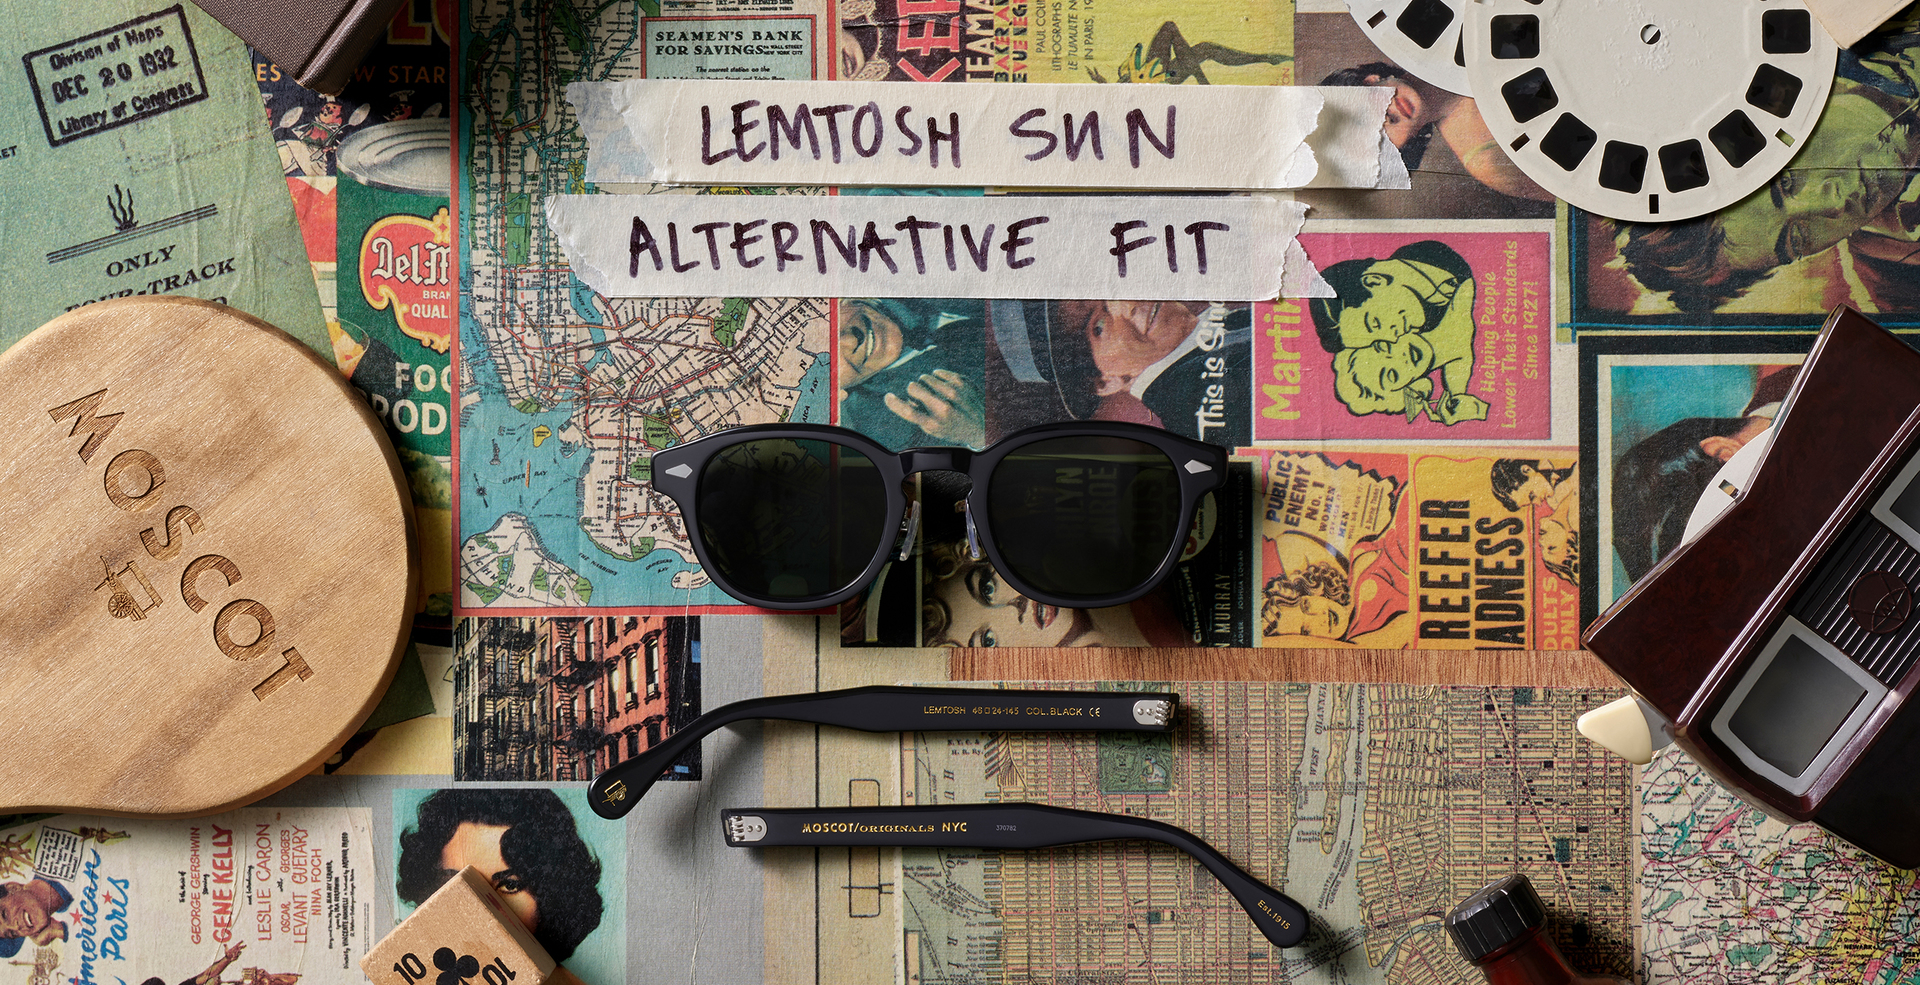 LEMTOSH SUN Alternative Fit